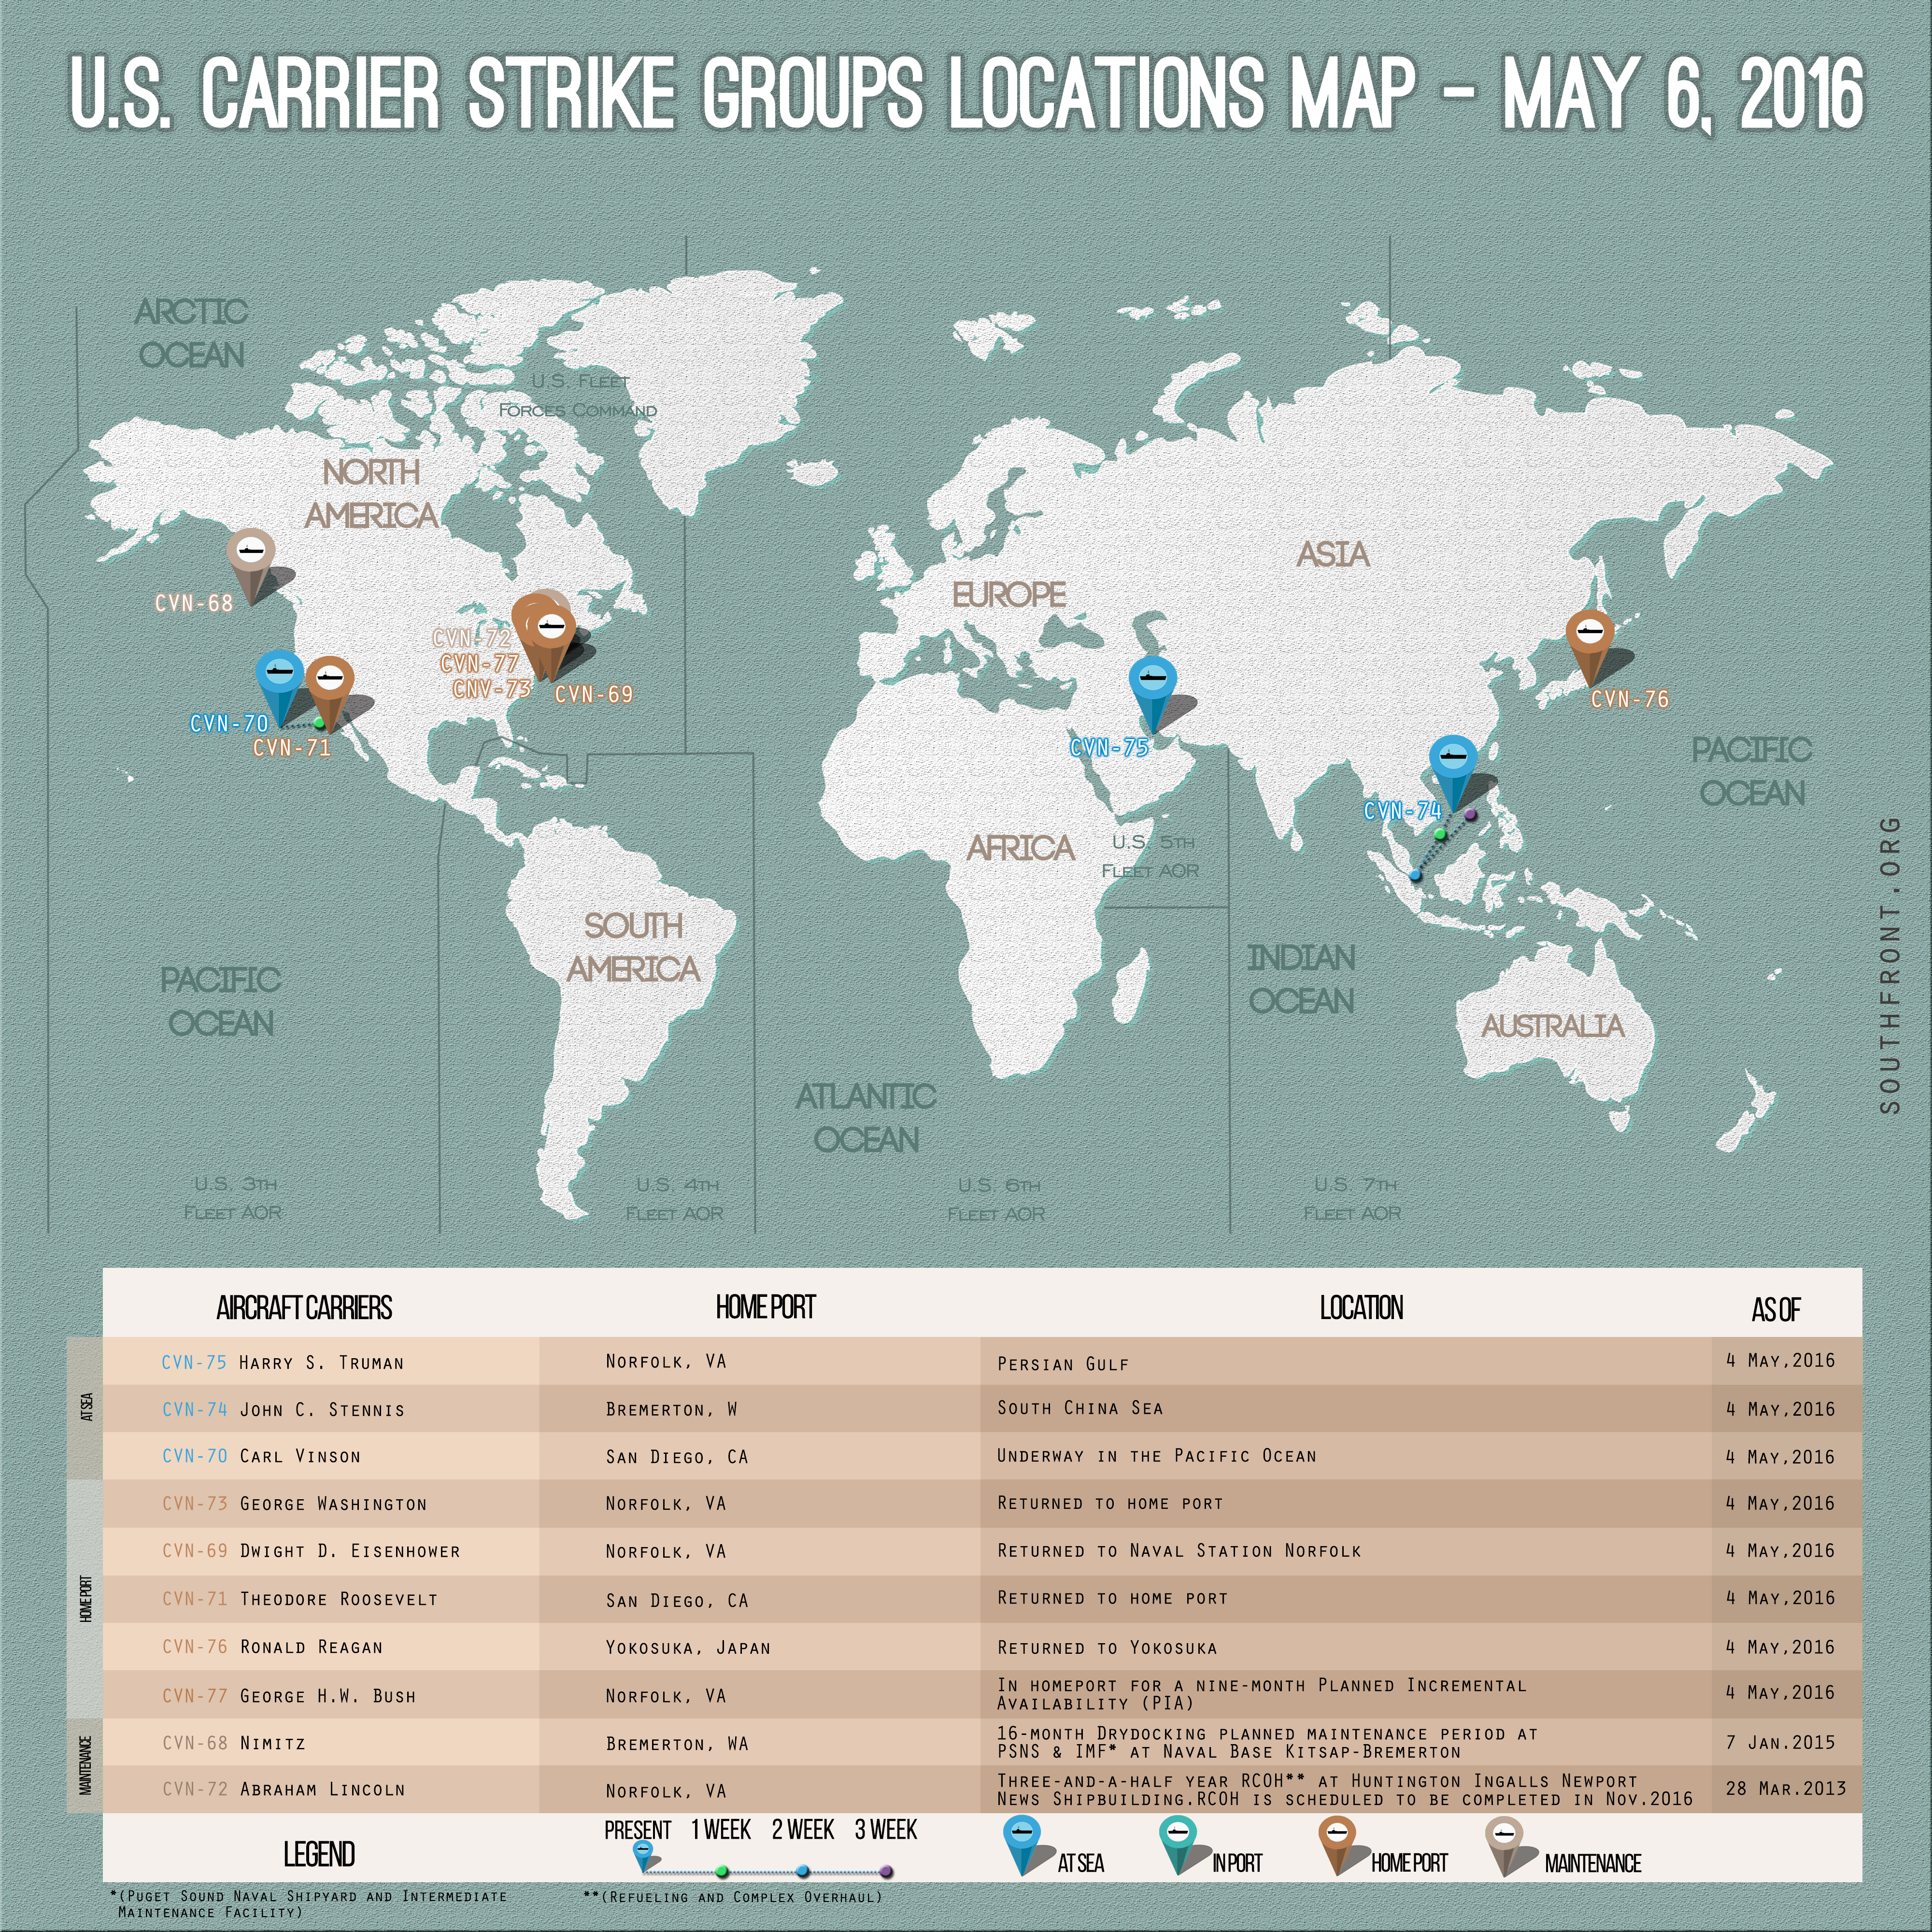 U.S. Carrier Strike Groups Locations Map – May 6, 2016